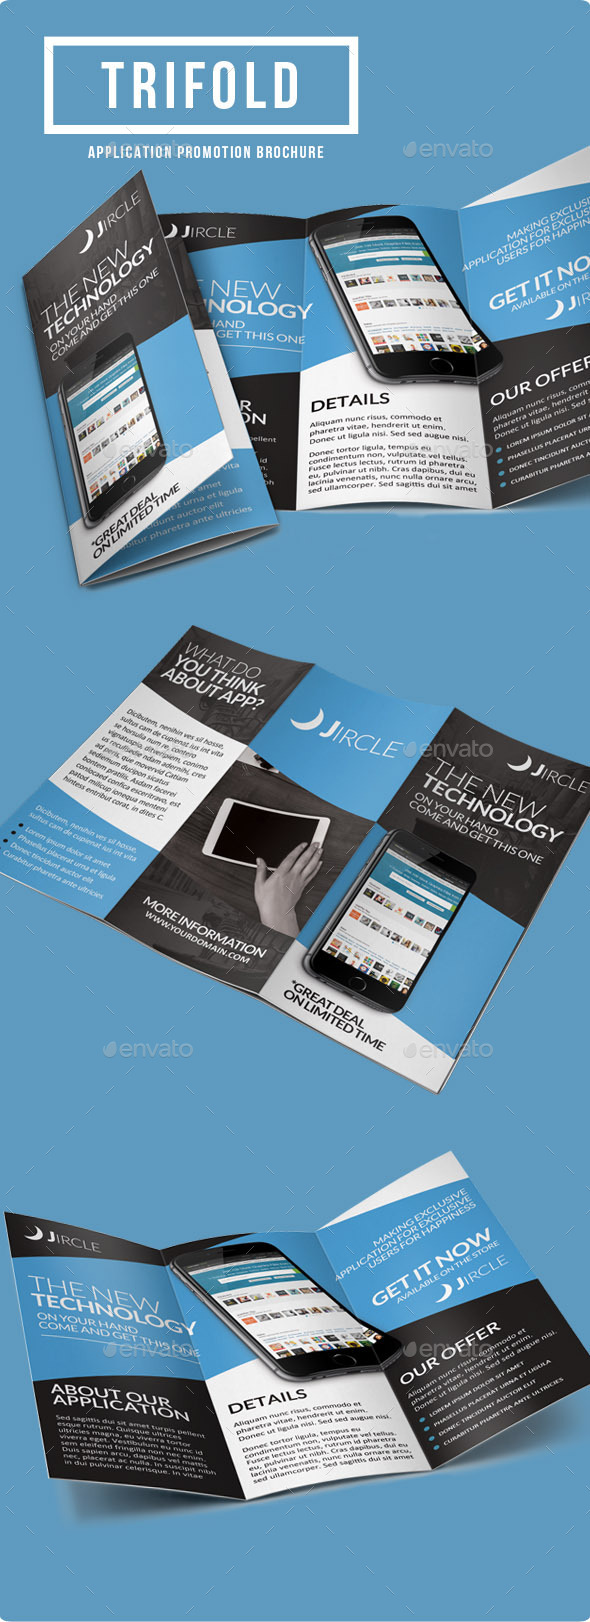 GraphicRiver App Promotion Trifold Brochure 9258240